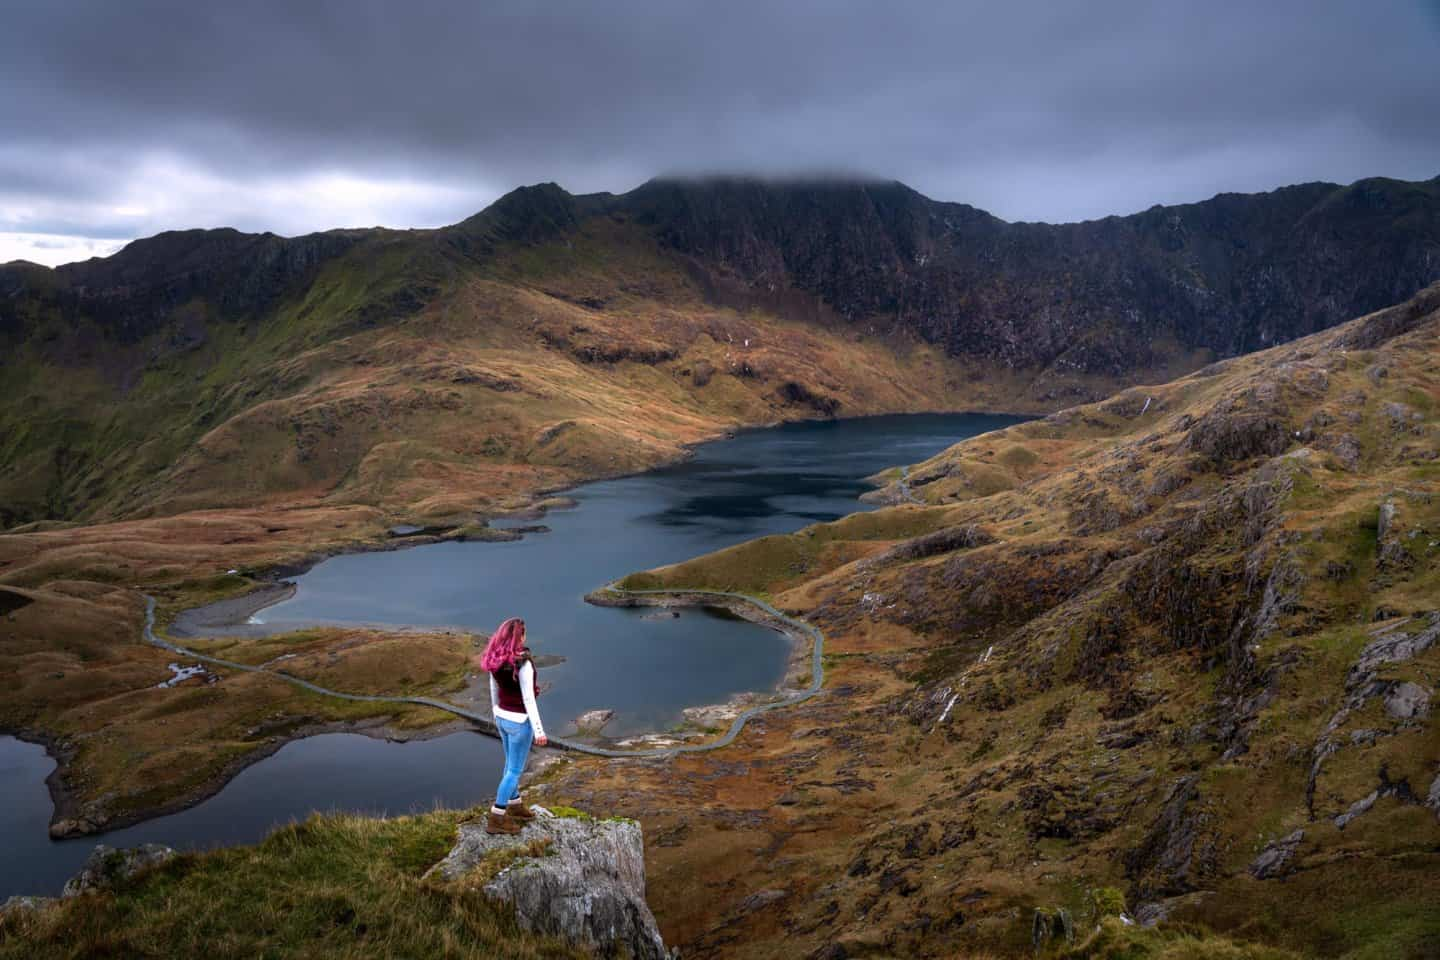 The views of Llyn Llydaw make the Pyg Track one of the best locations for Snowdonia photography.